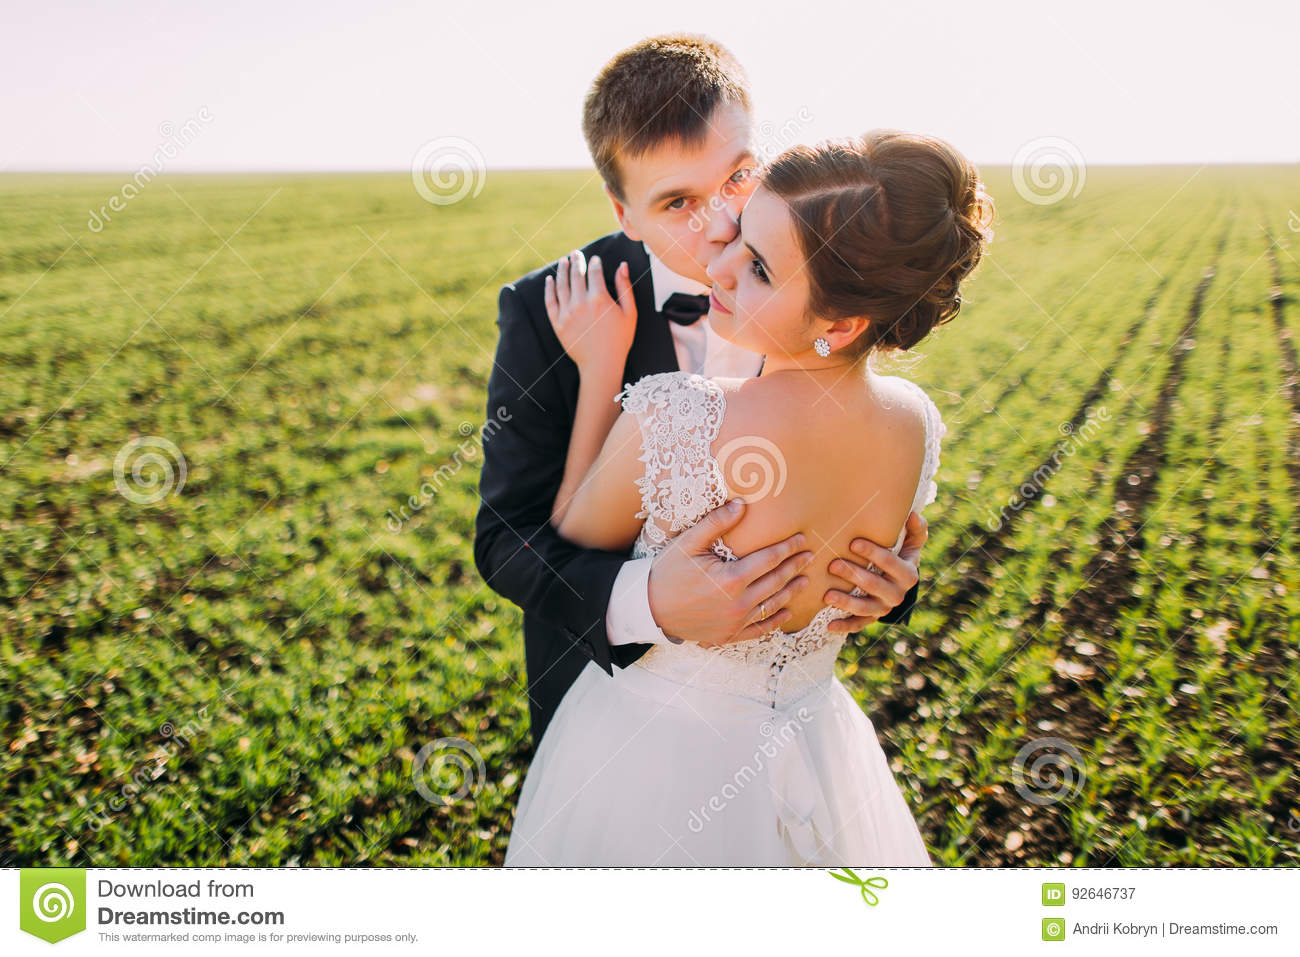 The horizontal view of the bride back kissed by the groom in the cheek at the background of the green field.